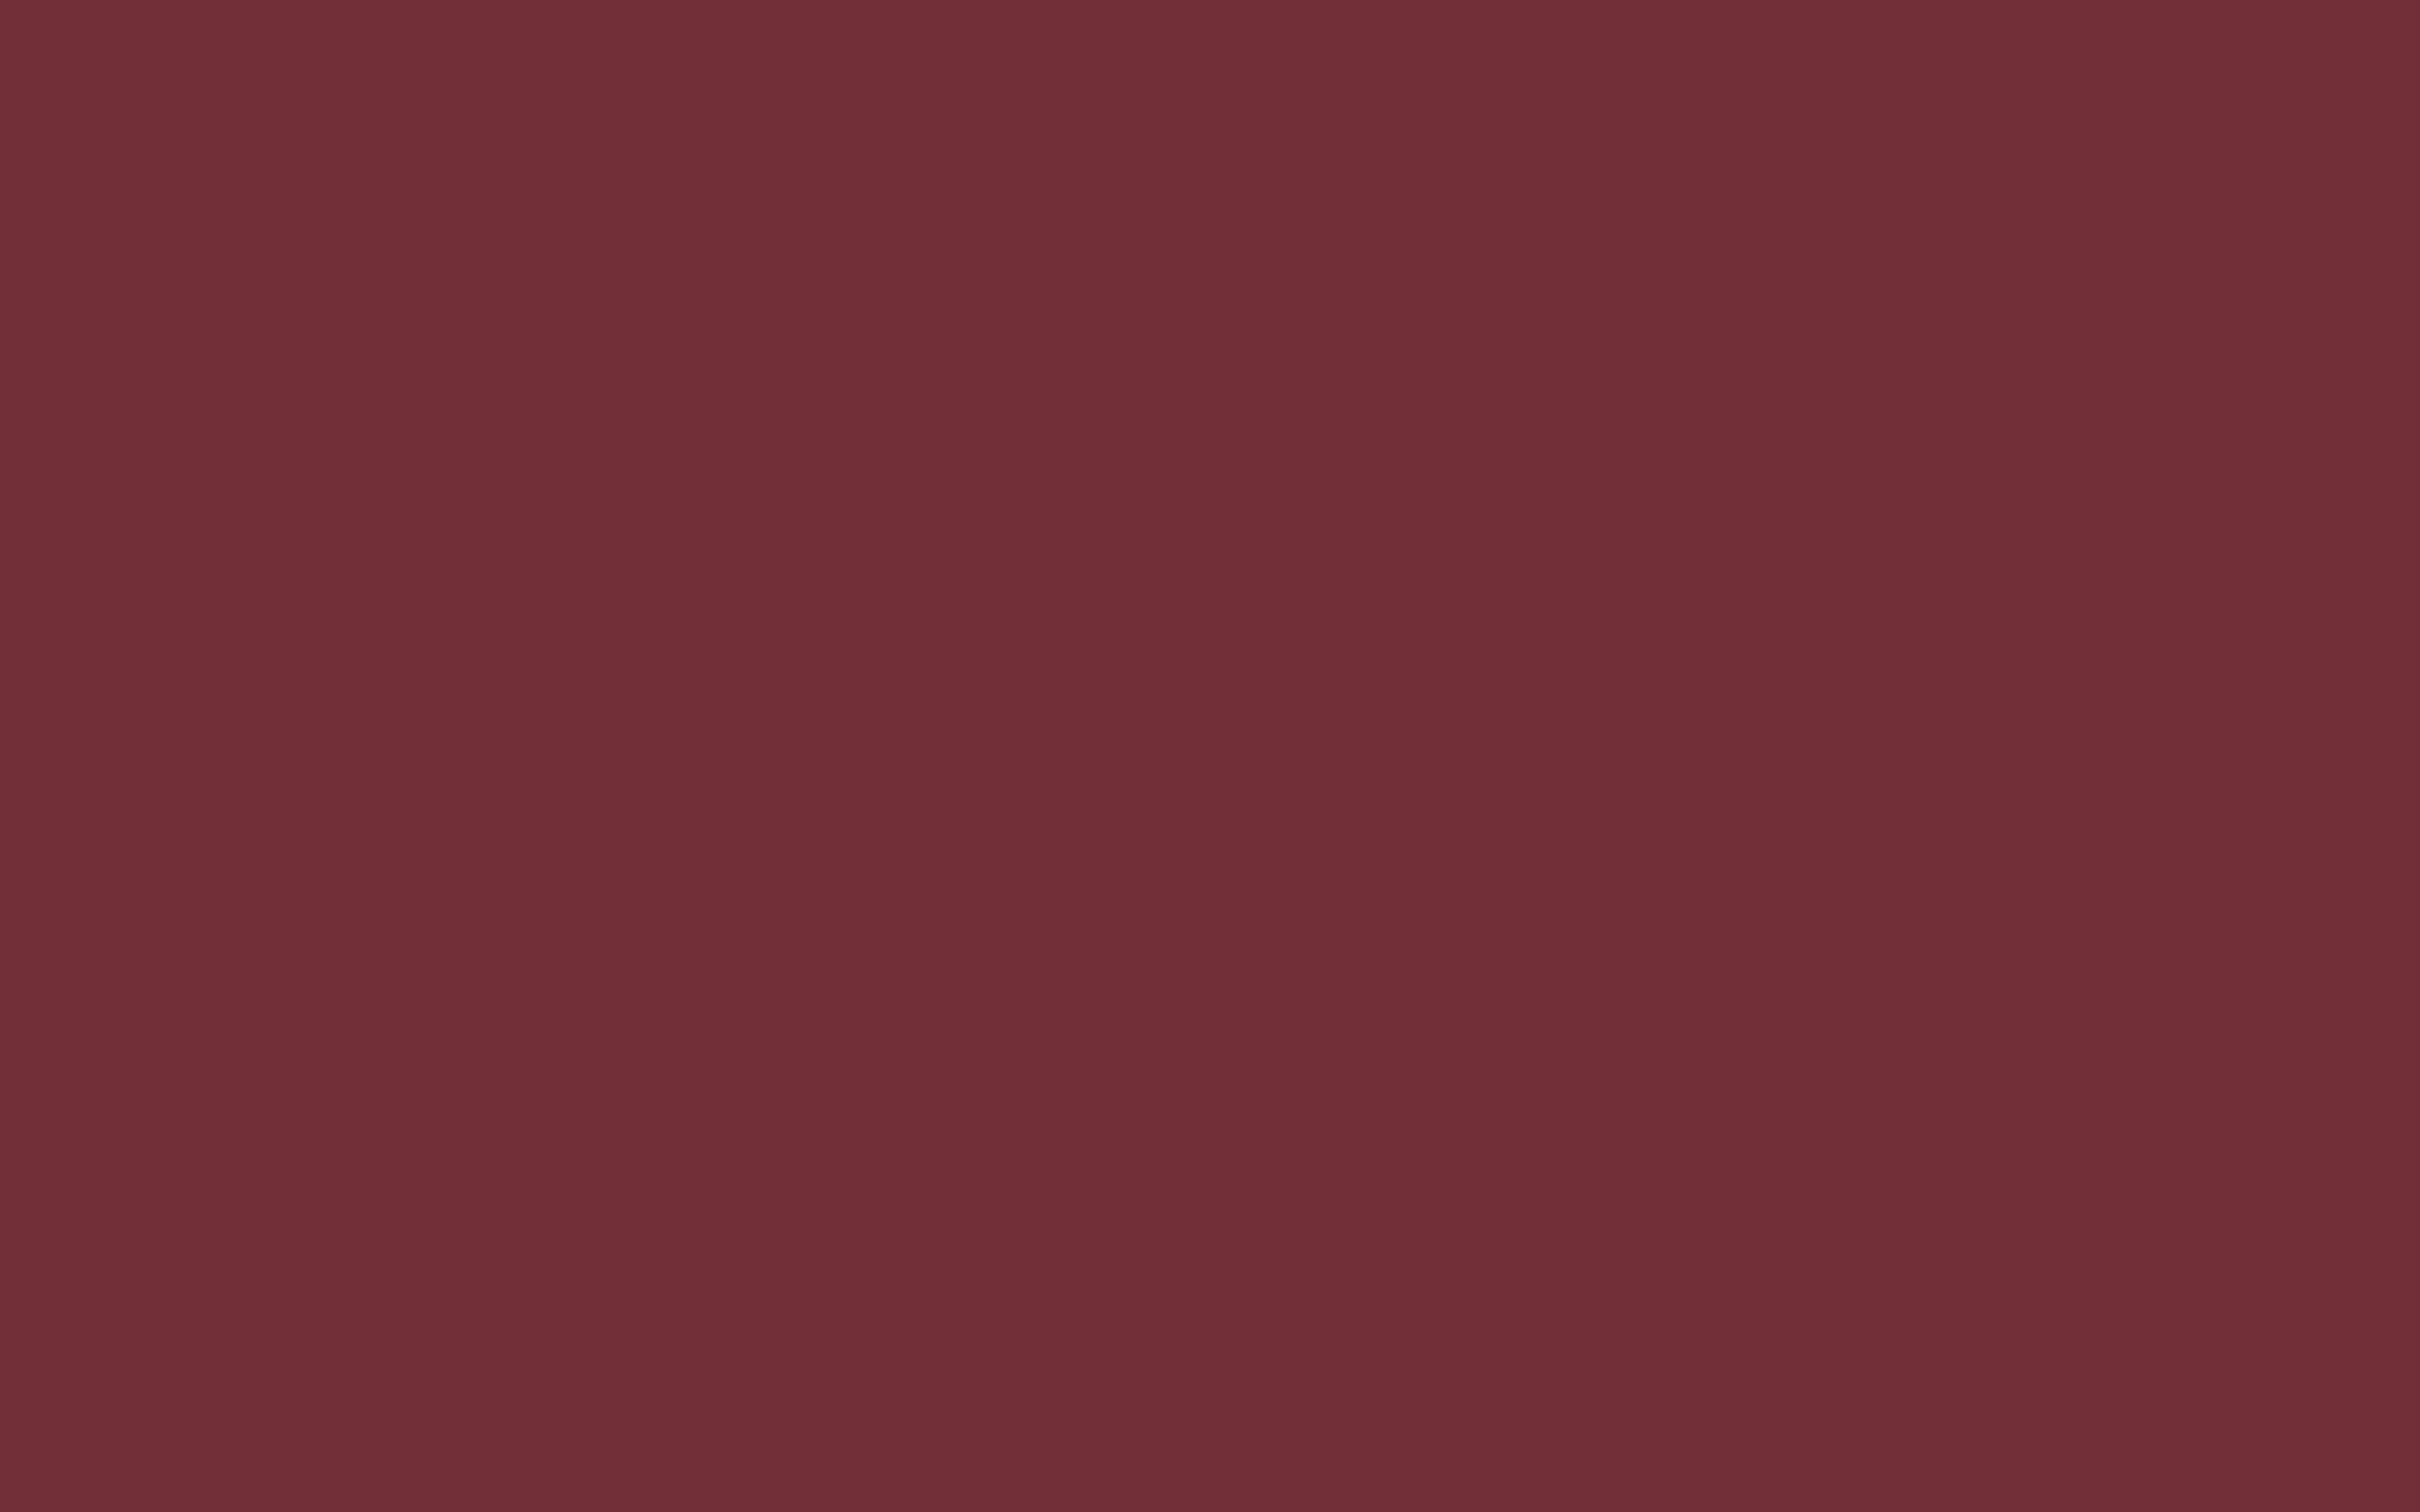 Wine Solid Color Background 2560x1600